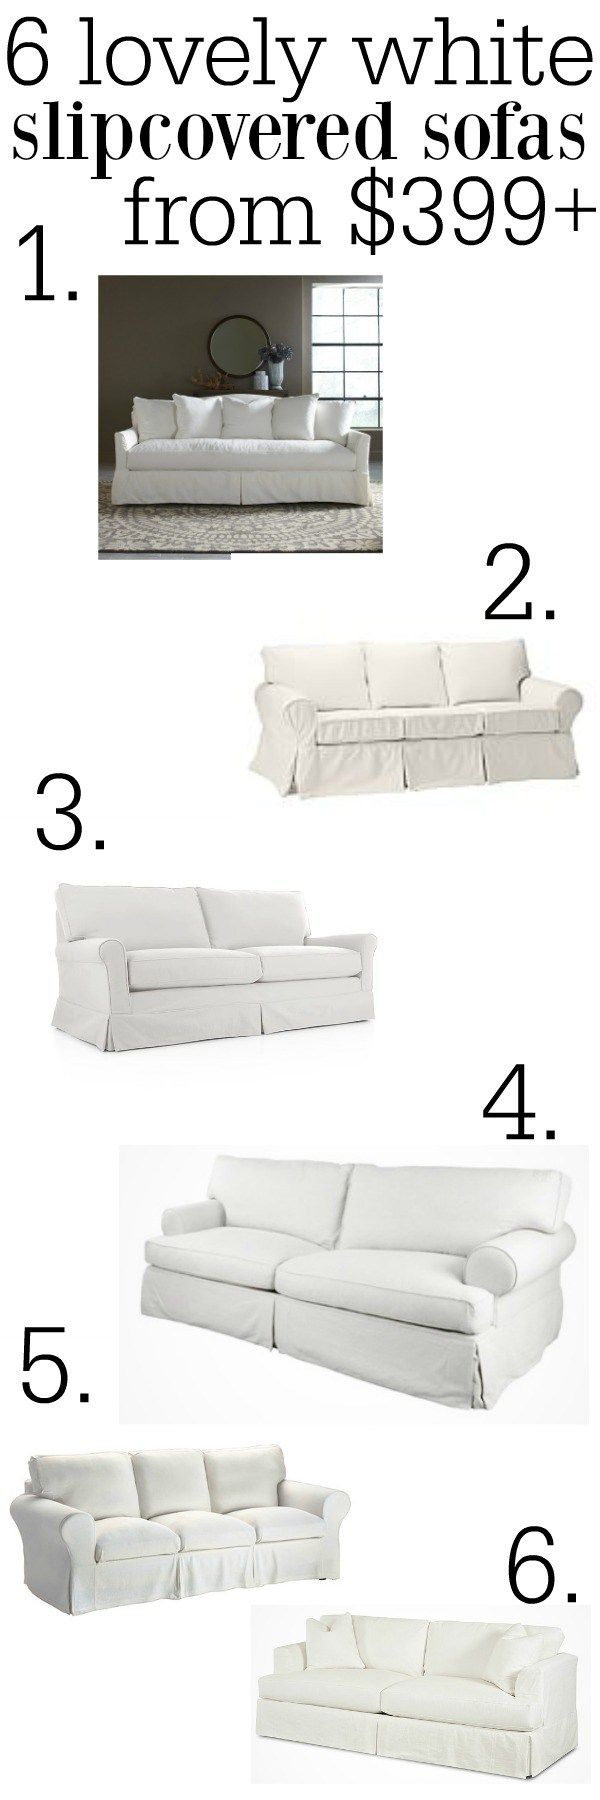 The best white slipcovered sofas from $399+ A great pin for places to buy furniture in all styles! Great for a farmhouse cottage style living room & good on any budget!